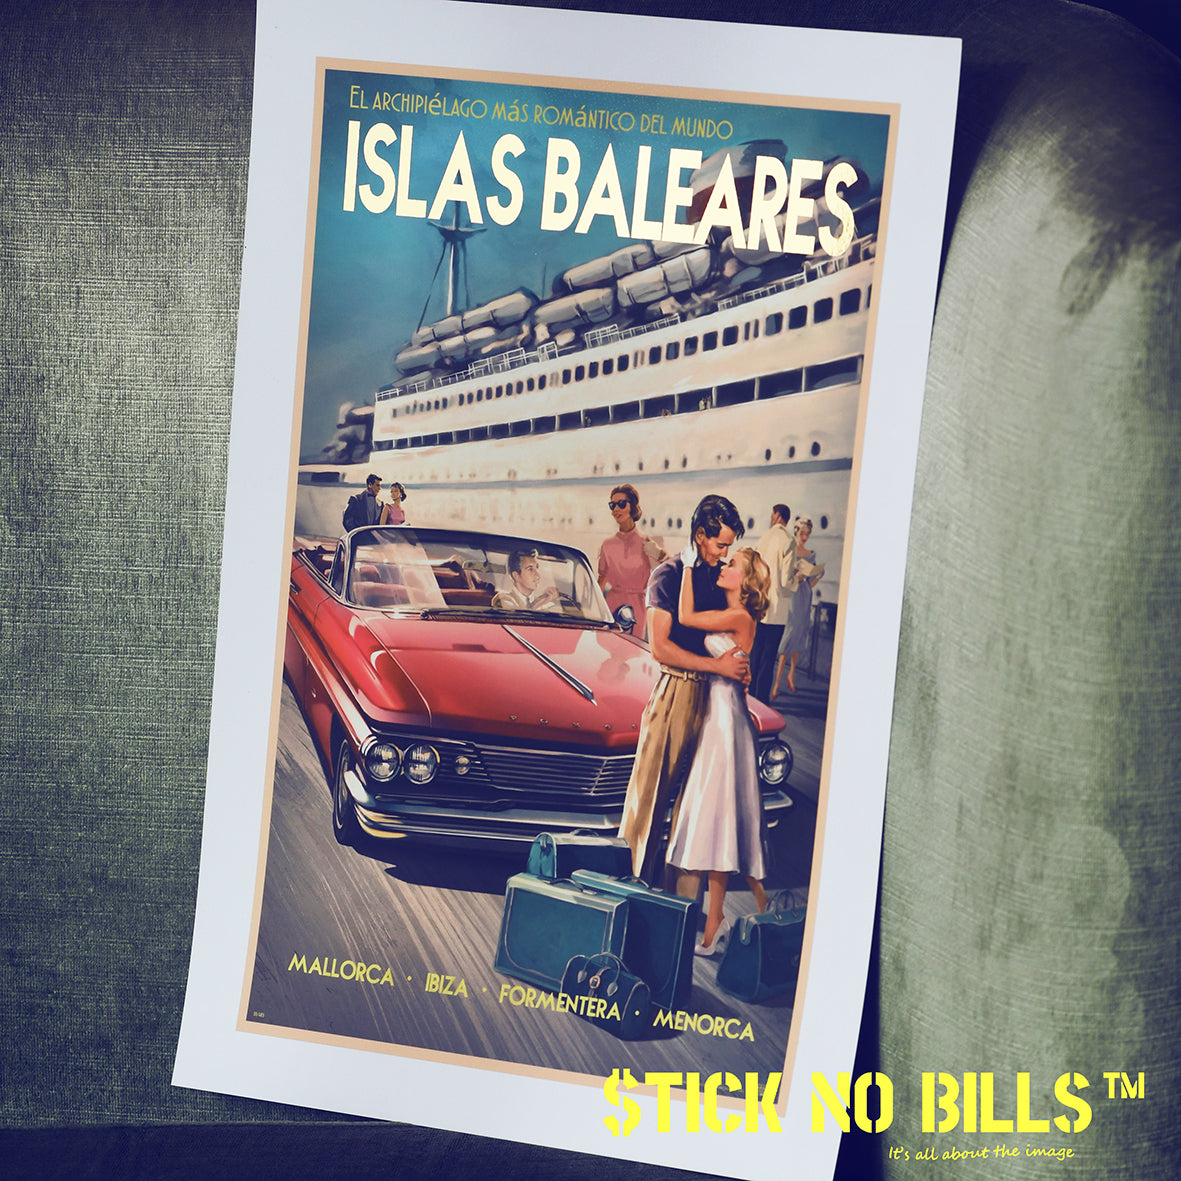 Foiled travel poster of a couple embracing next to their convertible with a cruise ship in the background.